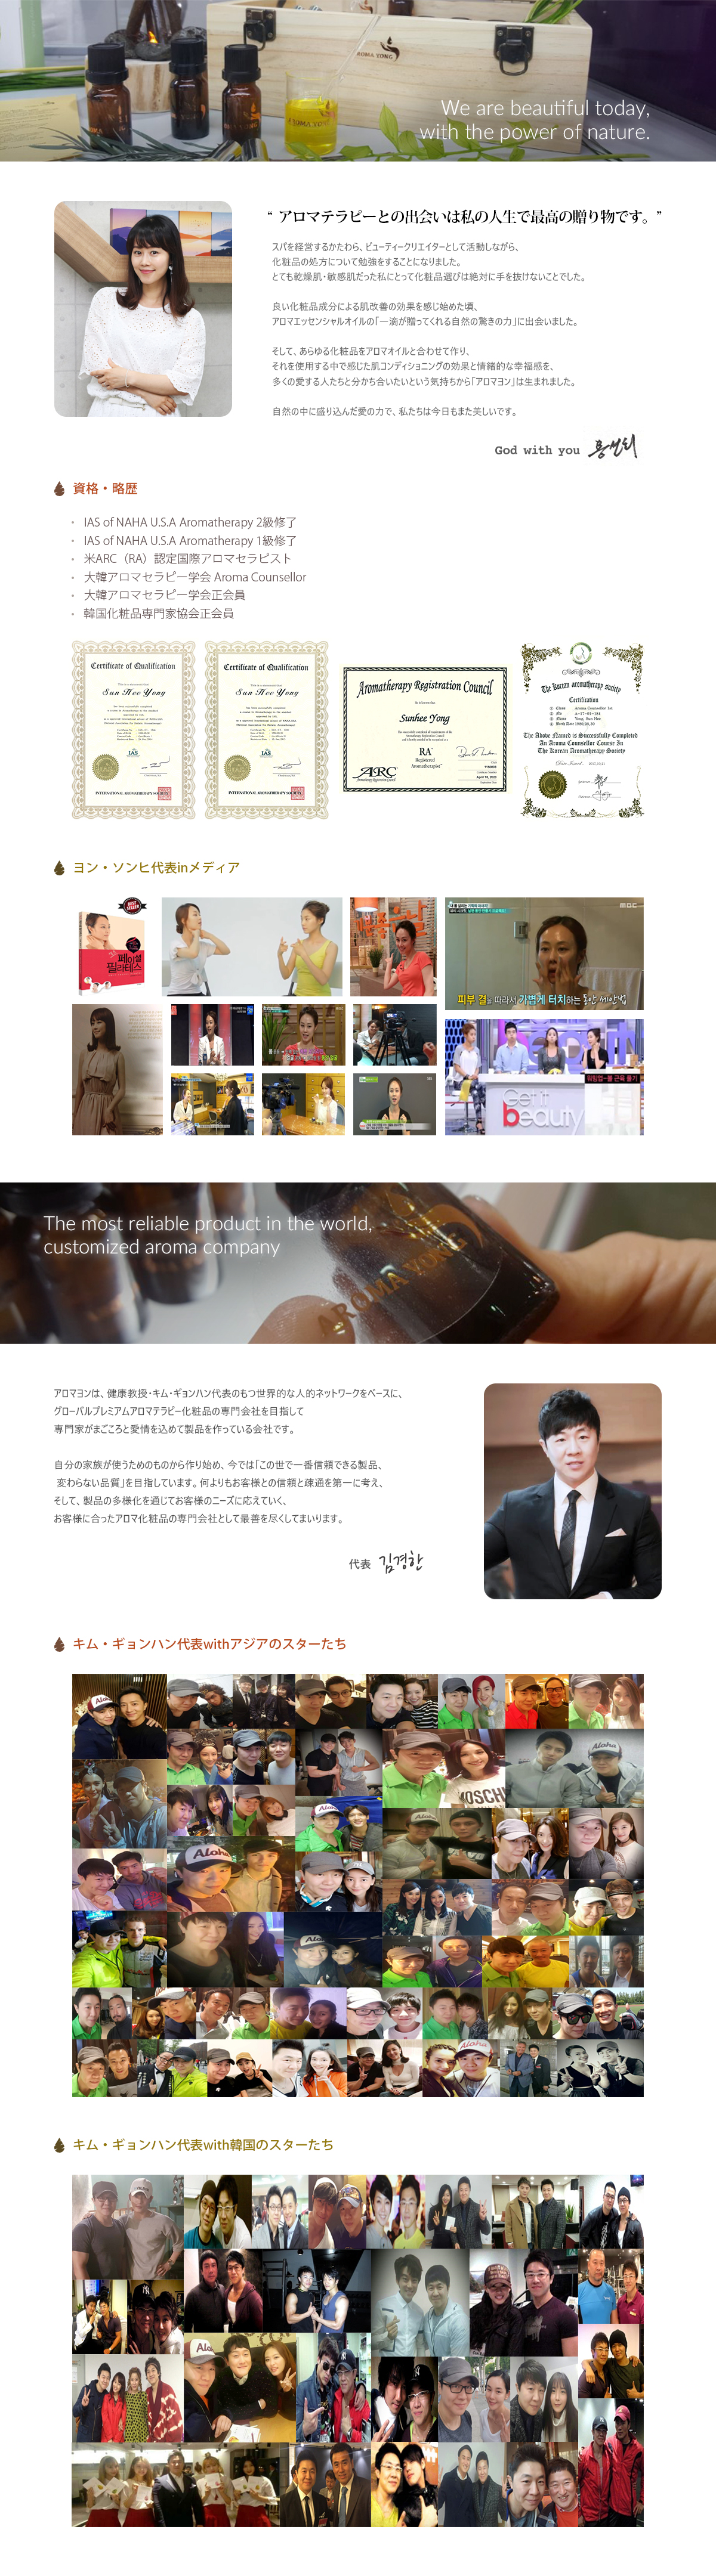 aroma yong ceo info